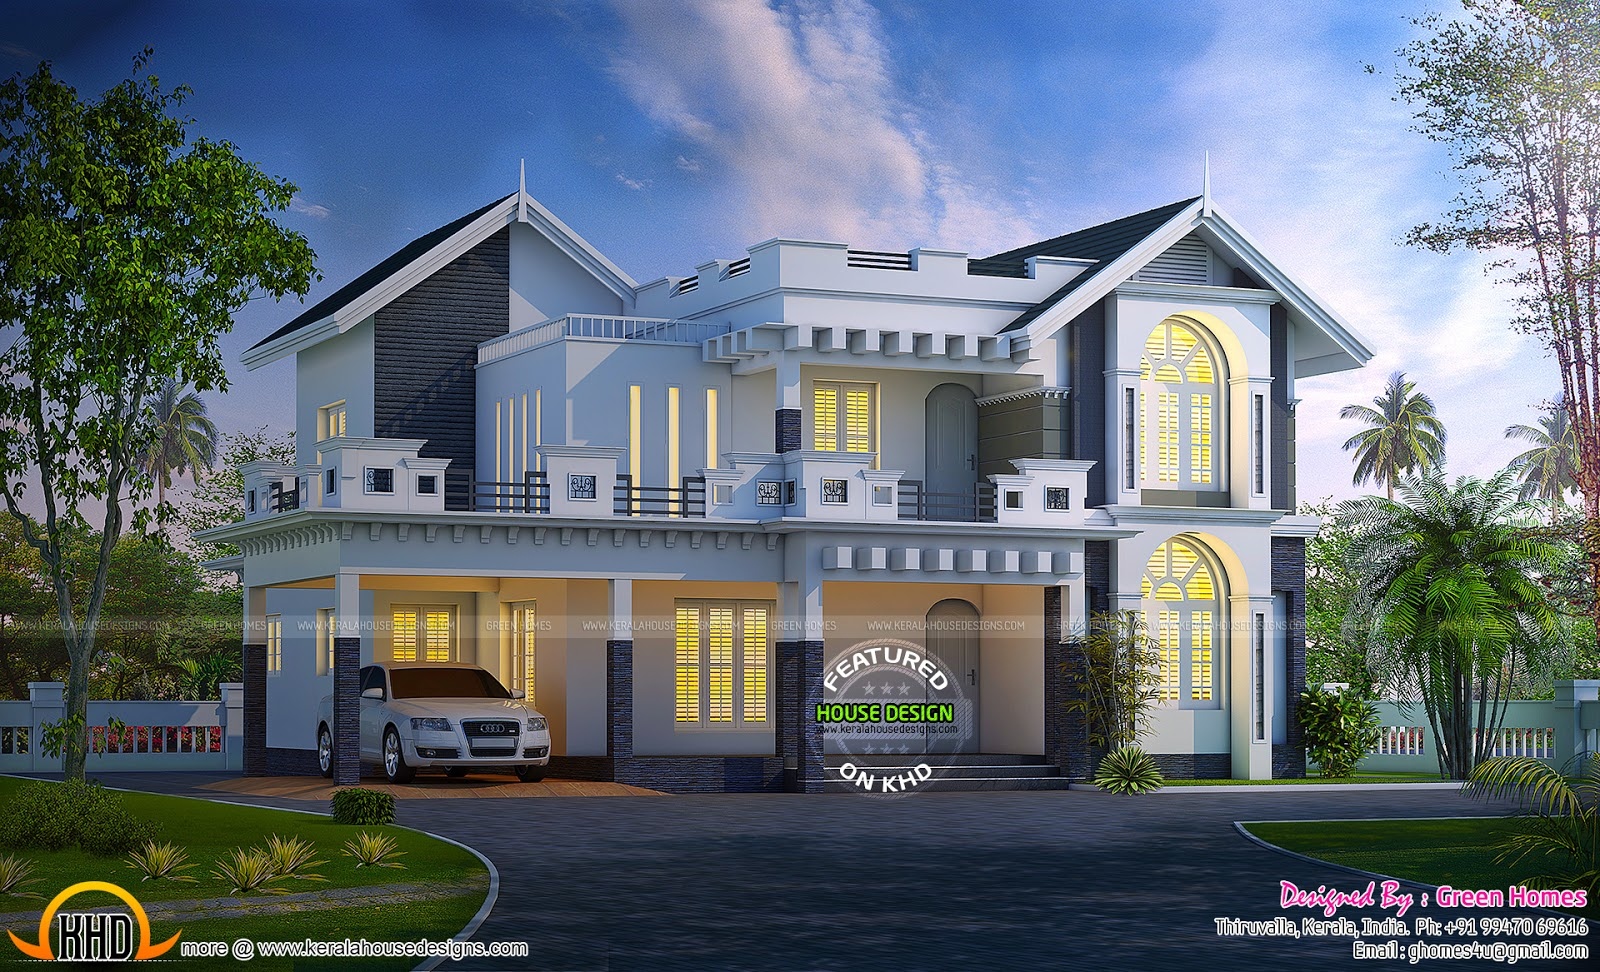 New kerala house plans for june 2015 keralahousedesigns for Latest model home design